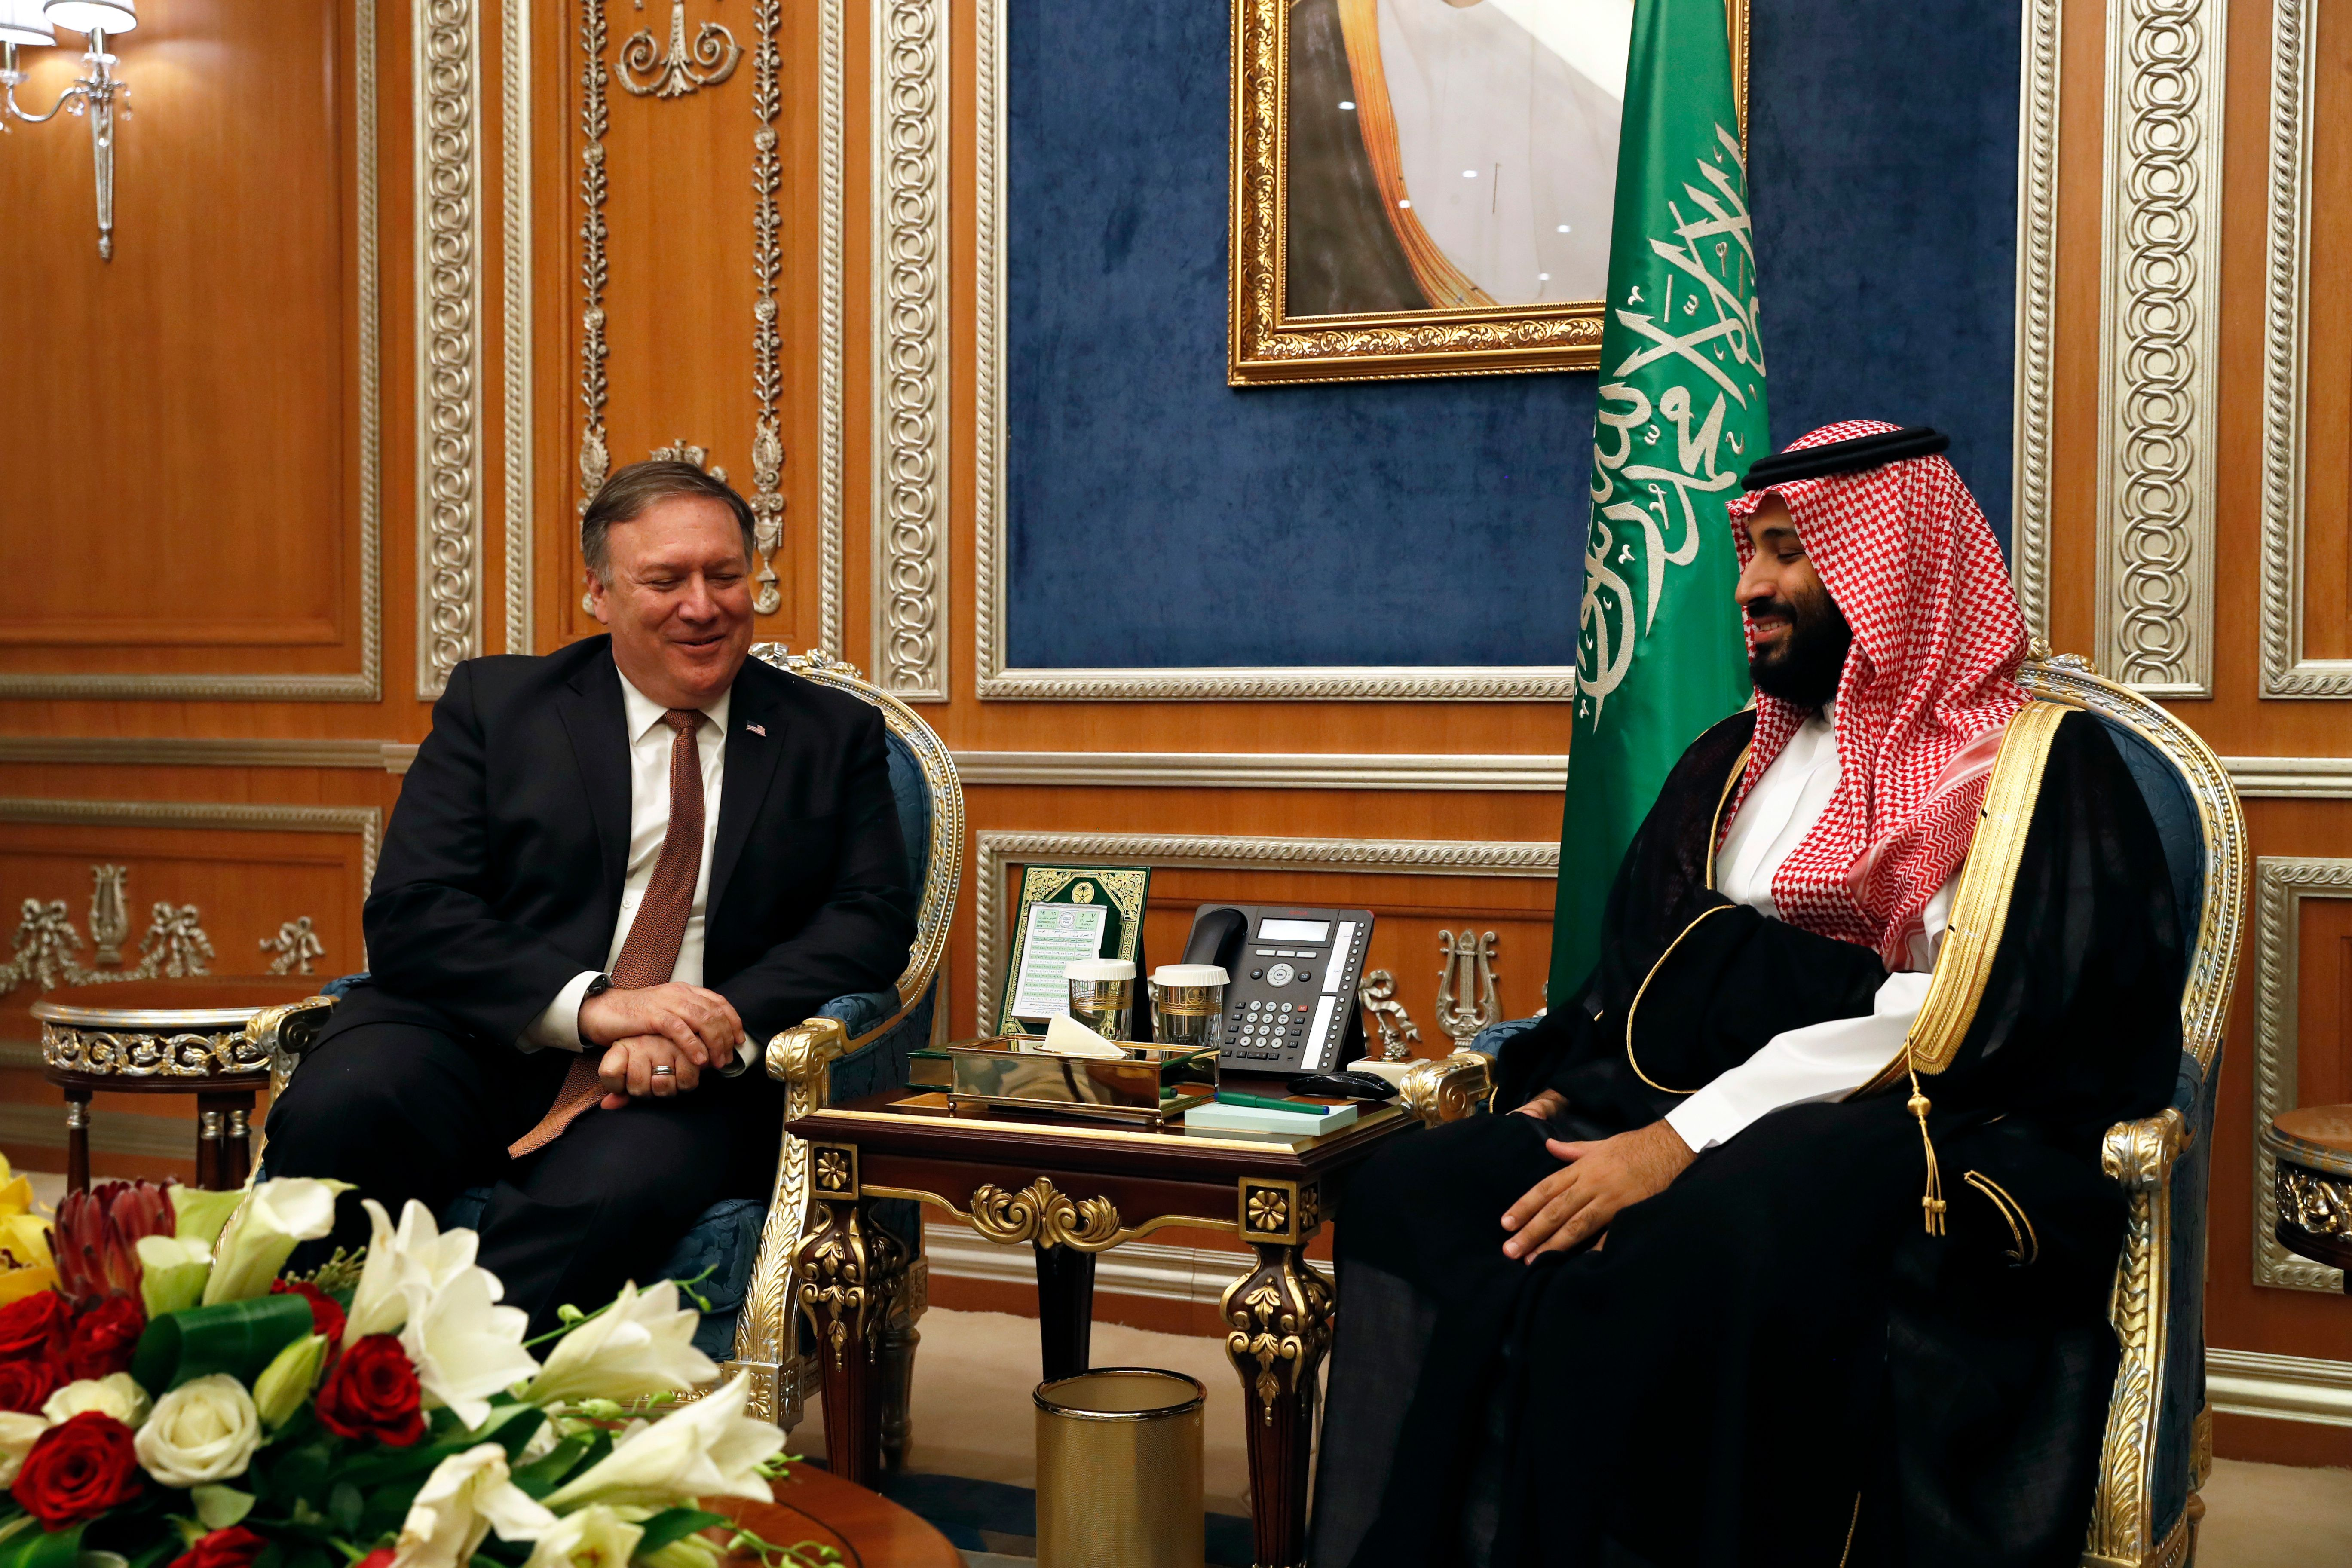 US Secretary of State Mike Pompeo (l.) meets with Saudi Crown Prince Mohammed bin Salman in Riyadh on Tuesday.